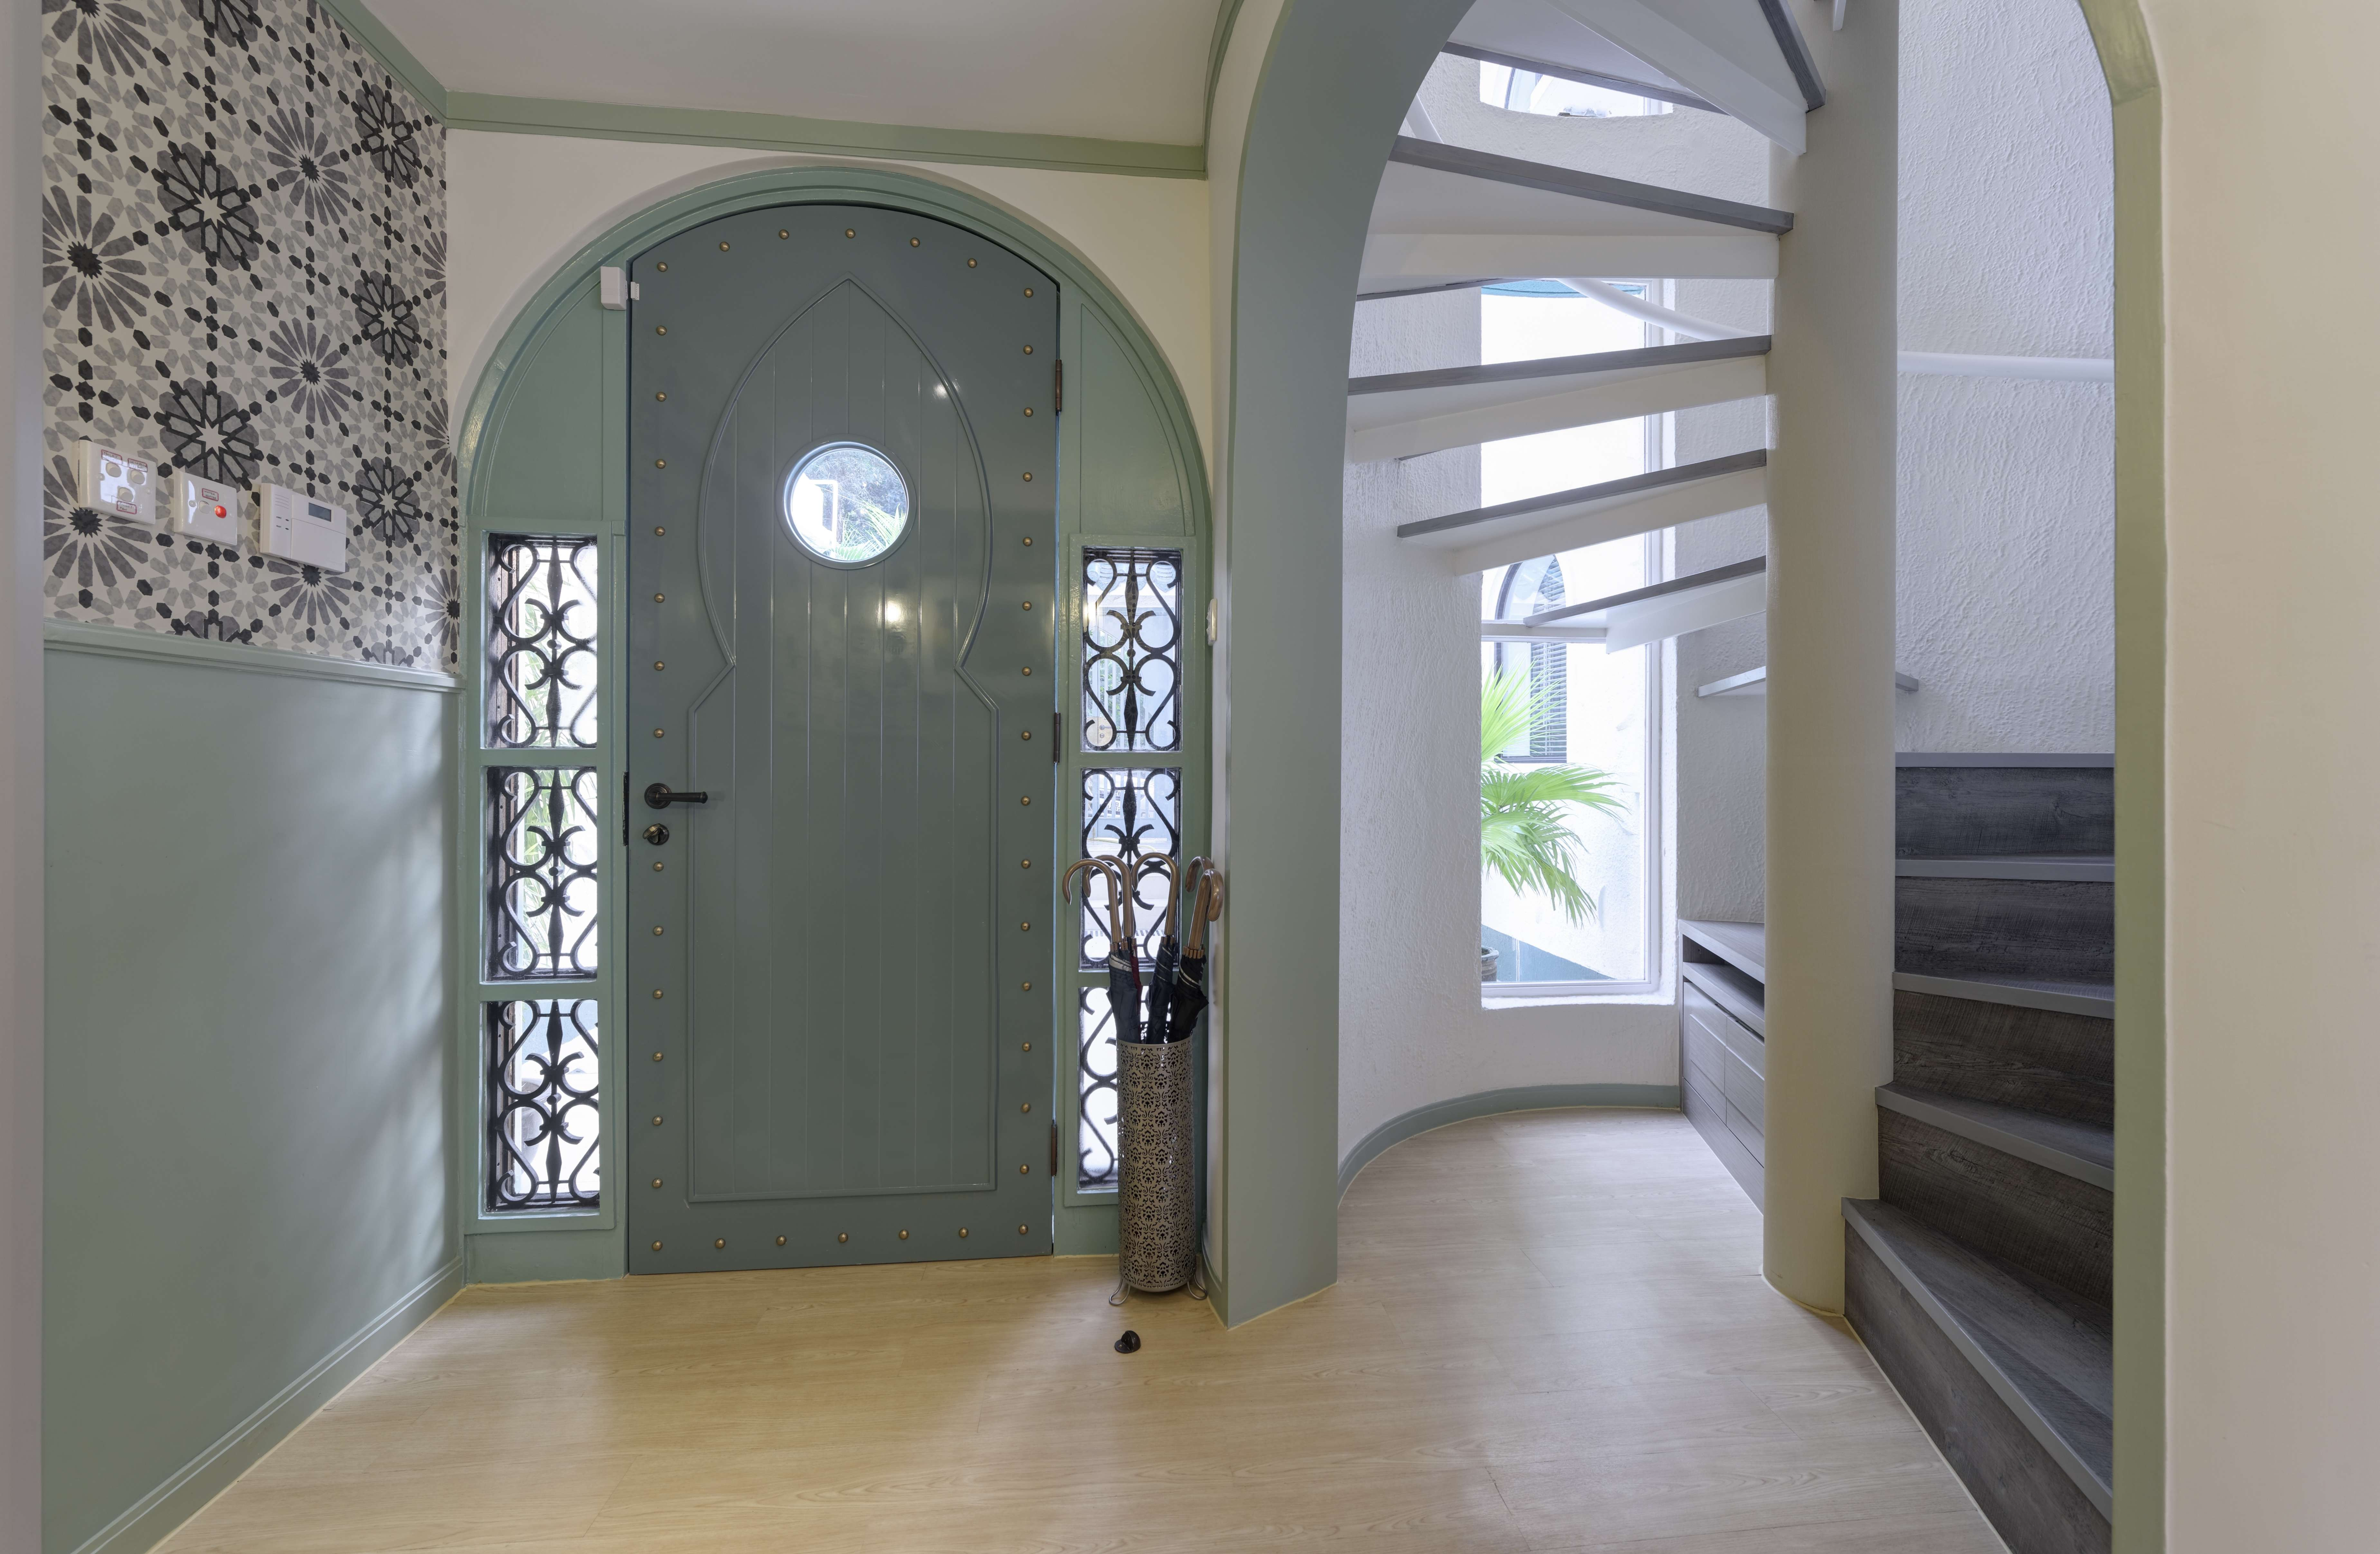 A Moroccan design fantasy comes true in Hong Kong | Post Magazine ... for Moroccan Archway  56bof